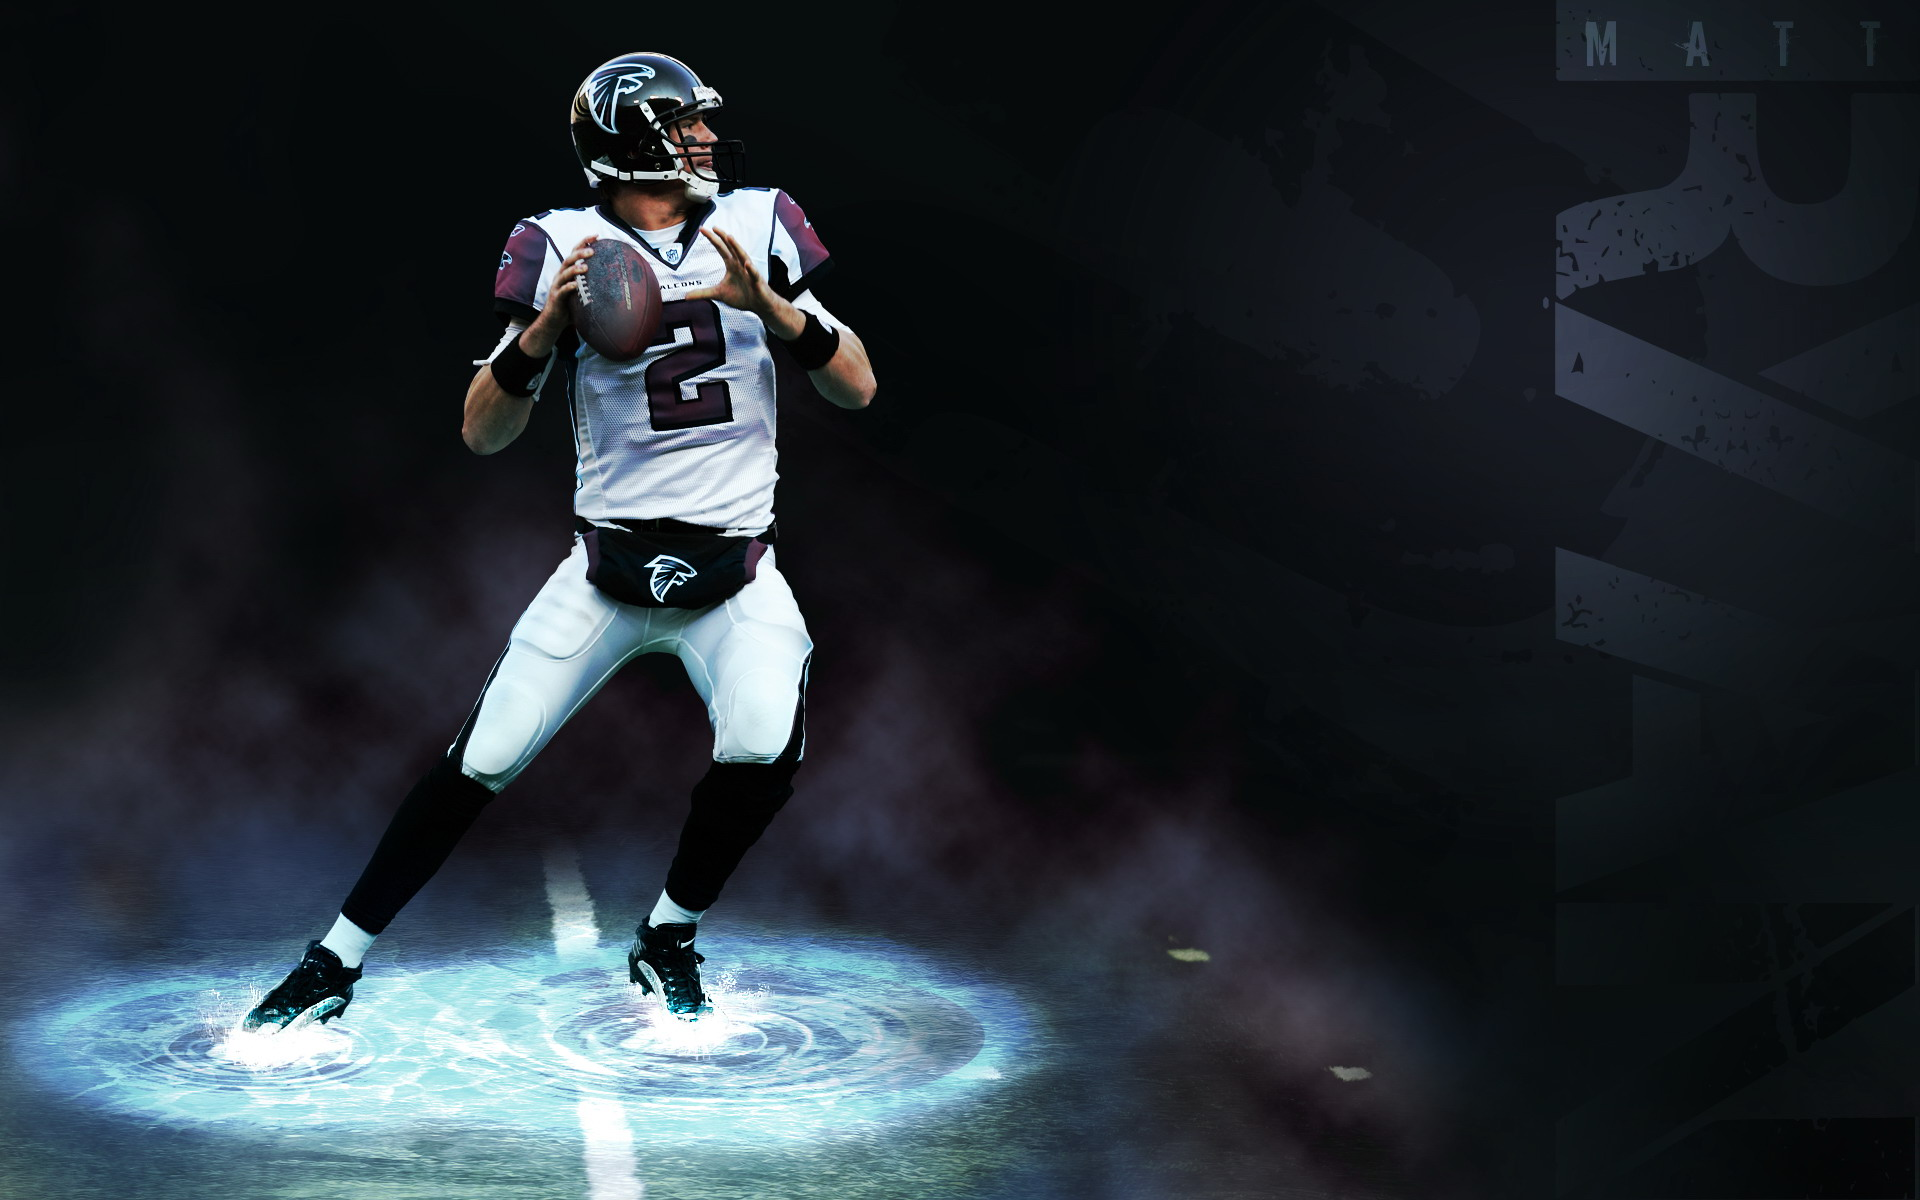 AMERICAN FOOTBALL WALLPAPERS FREE Wallpapers Background images 1920x1200